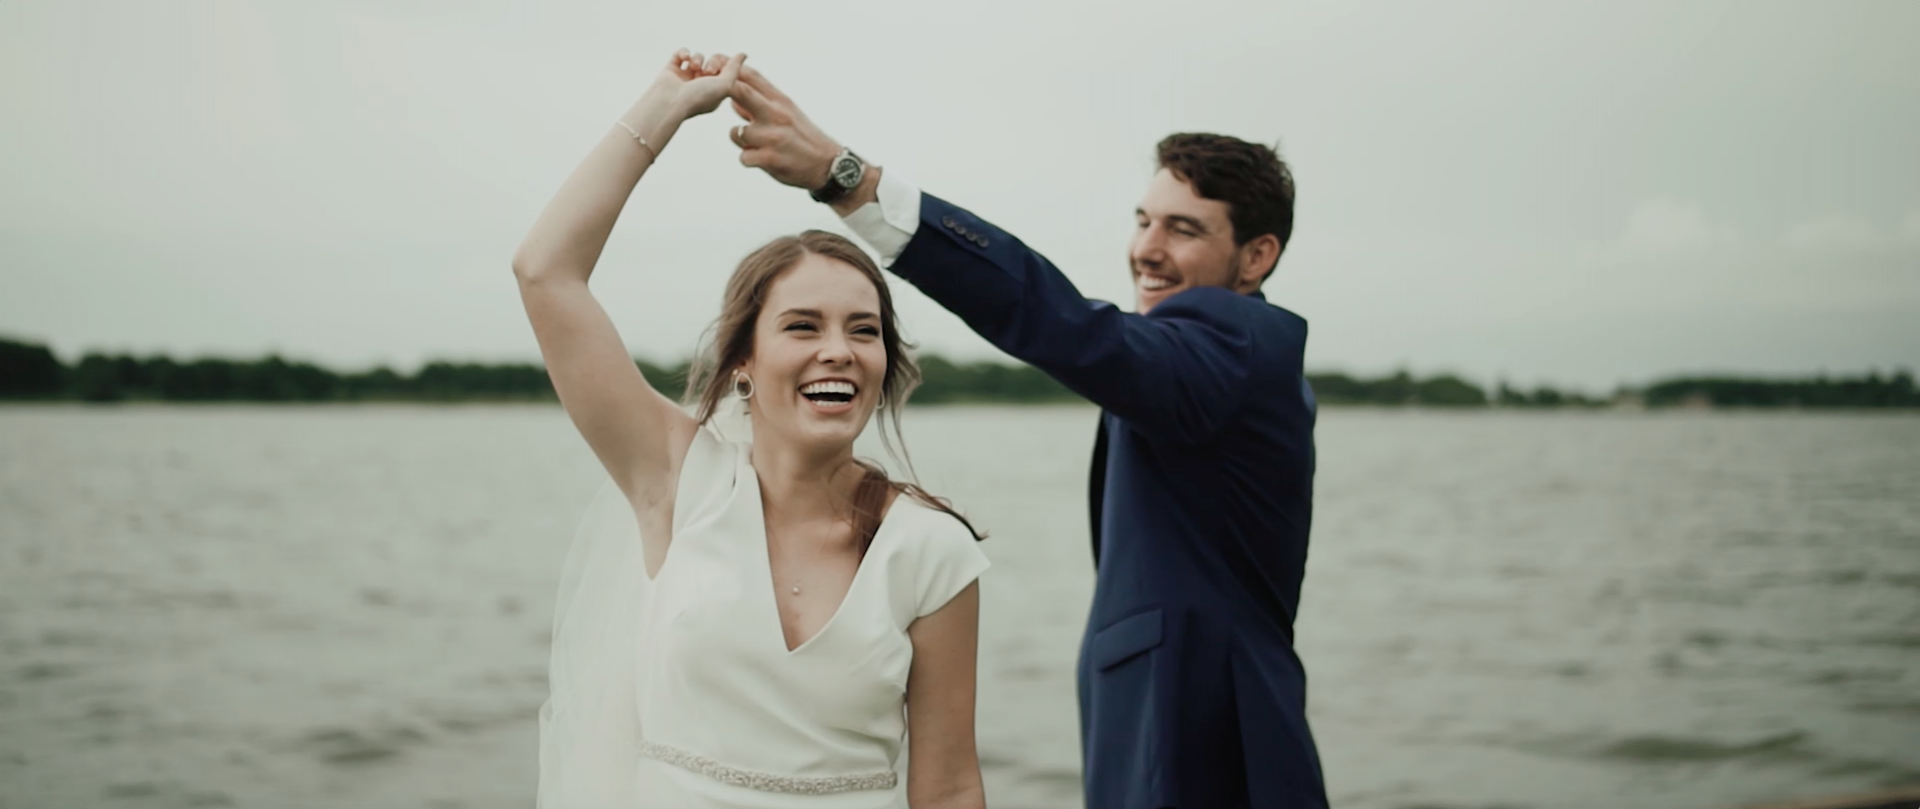 Alexandra + Grey | Lake Village, Arkansas | The Delta Resort